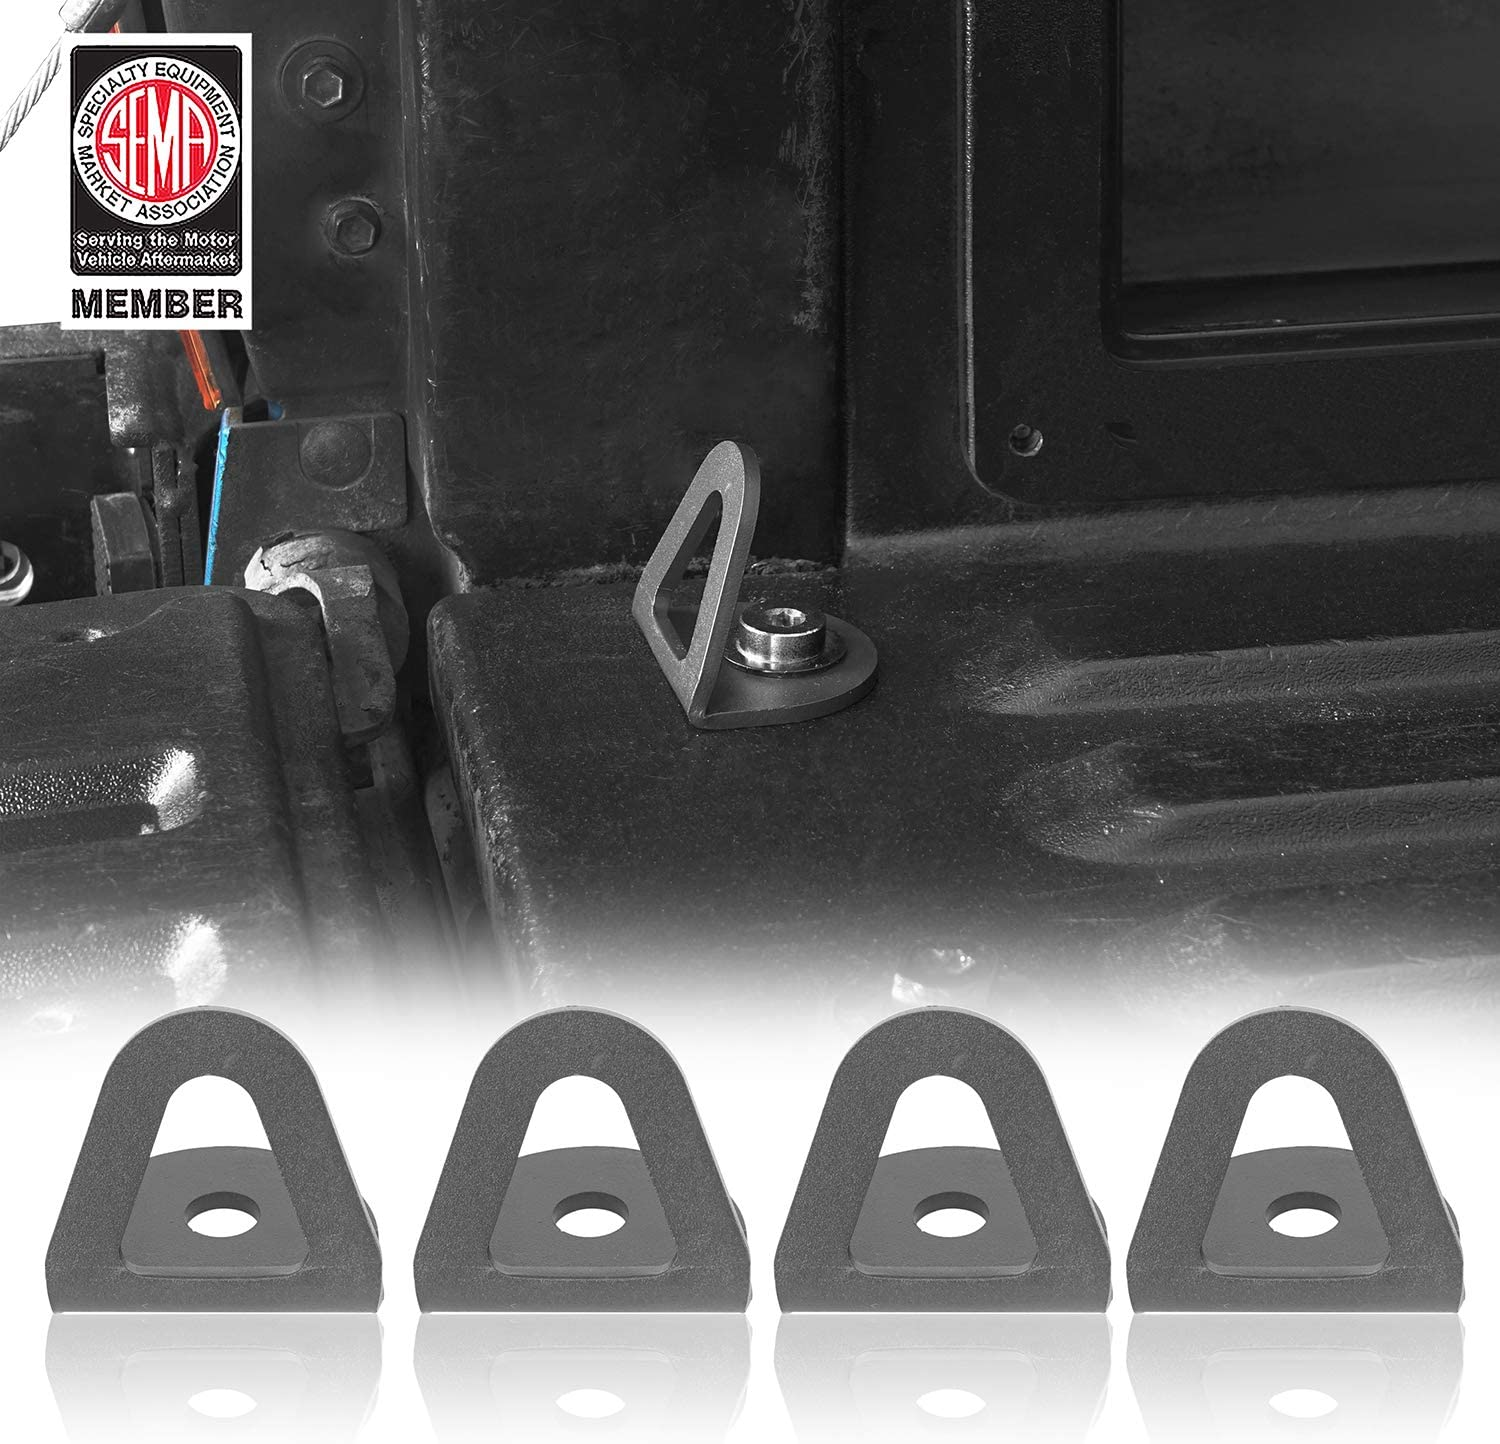 Pack of 4 Hooke Road Tacoma Bed Tie Down Hooks Compatible with Toyota Tacoma 2nd 3rd Gen 05-20 Pickup Truck